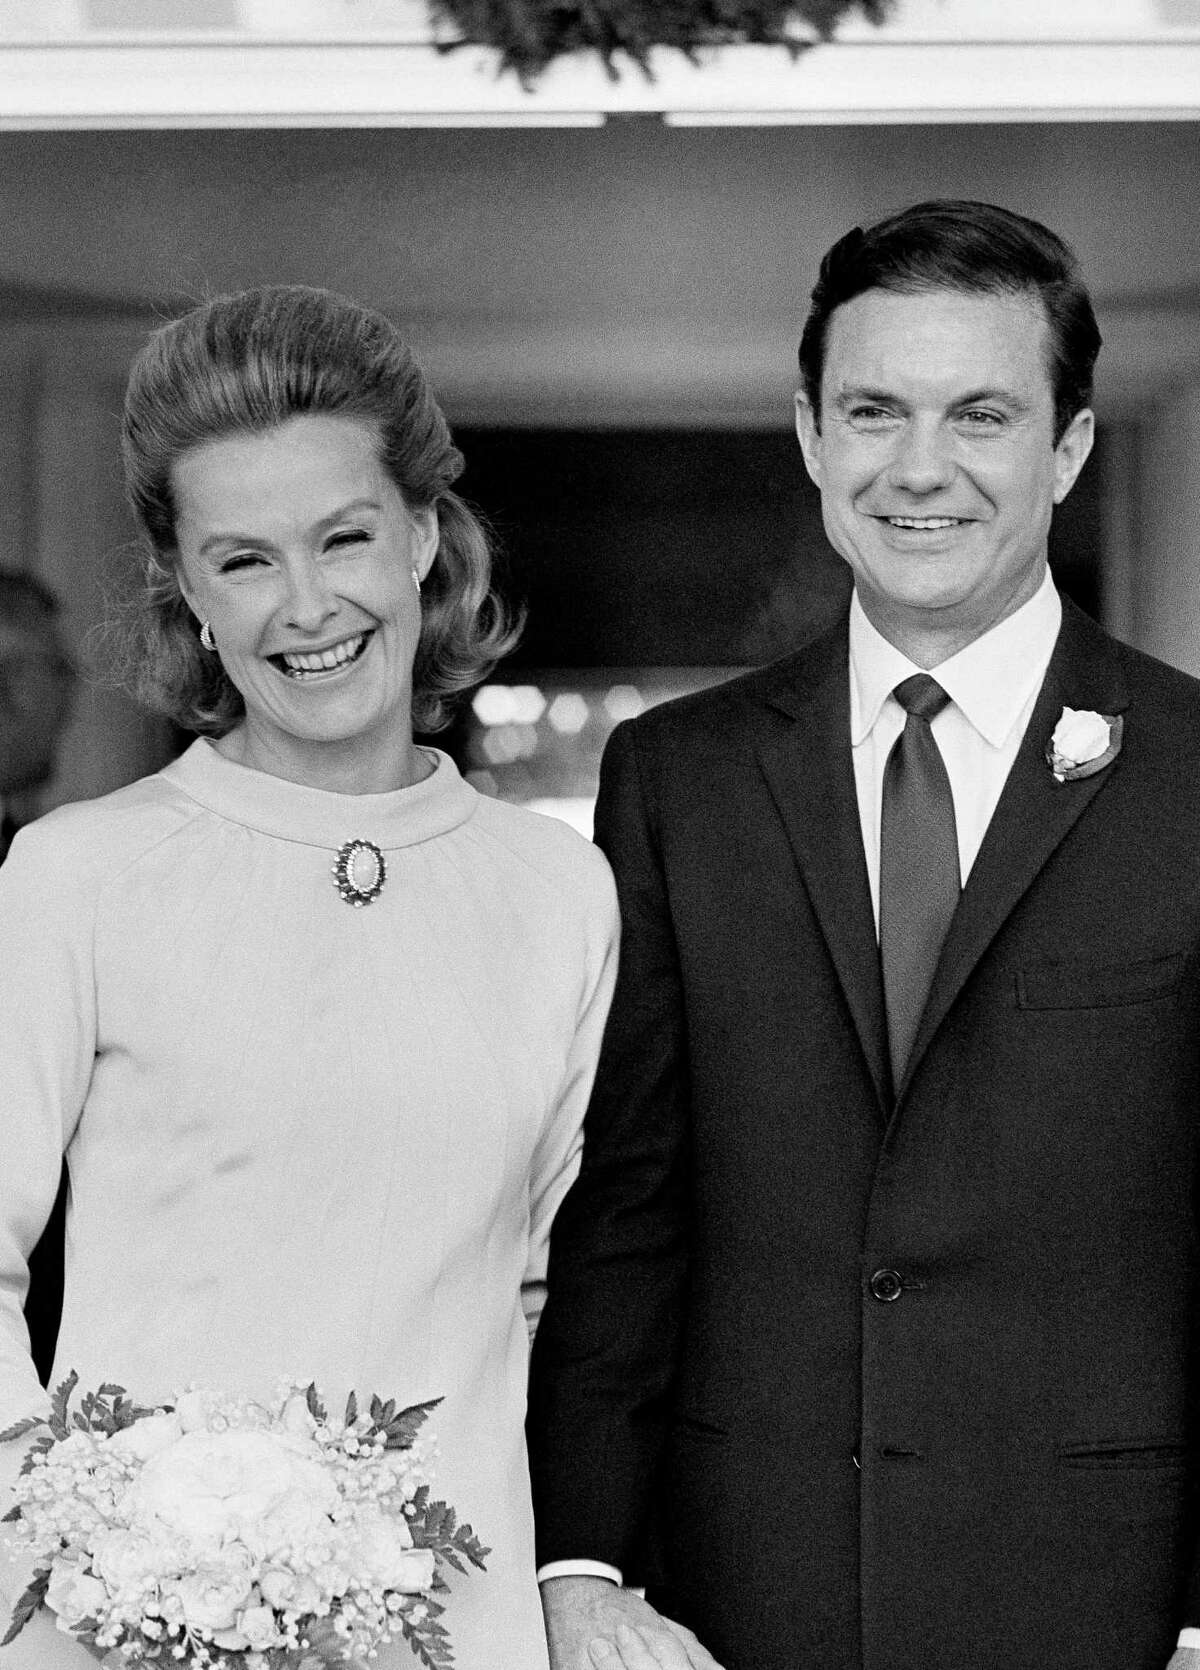 In this Dec. 21, 1966, file photo, actress Dina Merrill, left, and actor Cliff Robertson appear at their wedding at the palatial estate of her mother, cereal heiress Marjorie Meriwether Post, in Washington. Merrill, the rebellious heiress who defied her super-rich parents to become an actress, died Monday, May 22, 2017, at age 93.